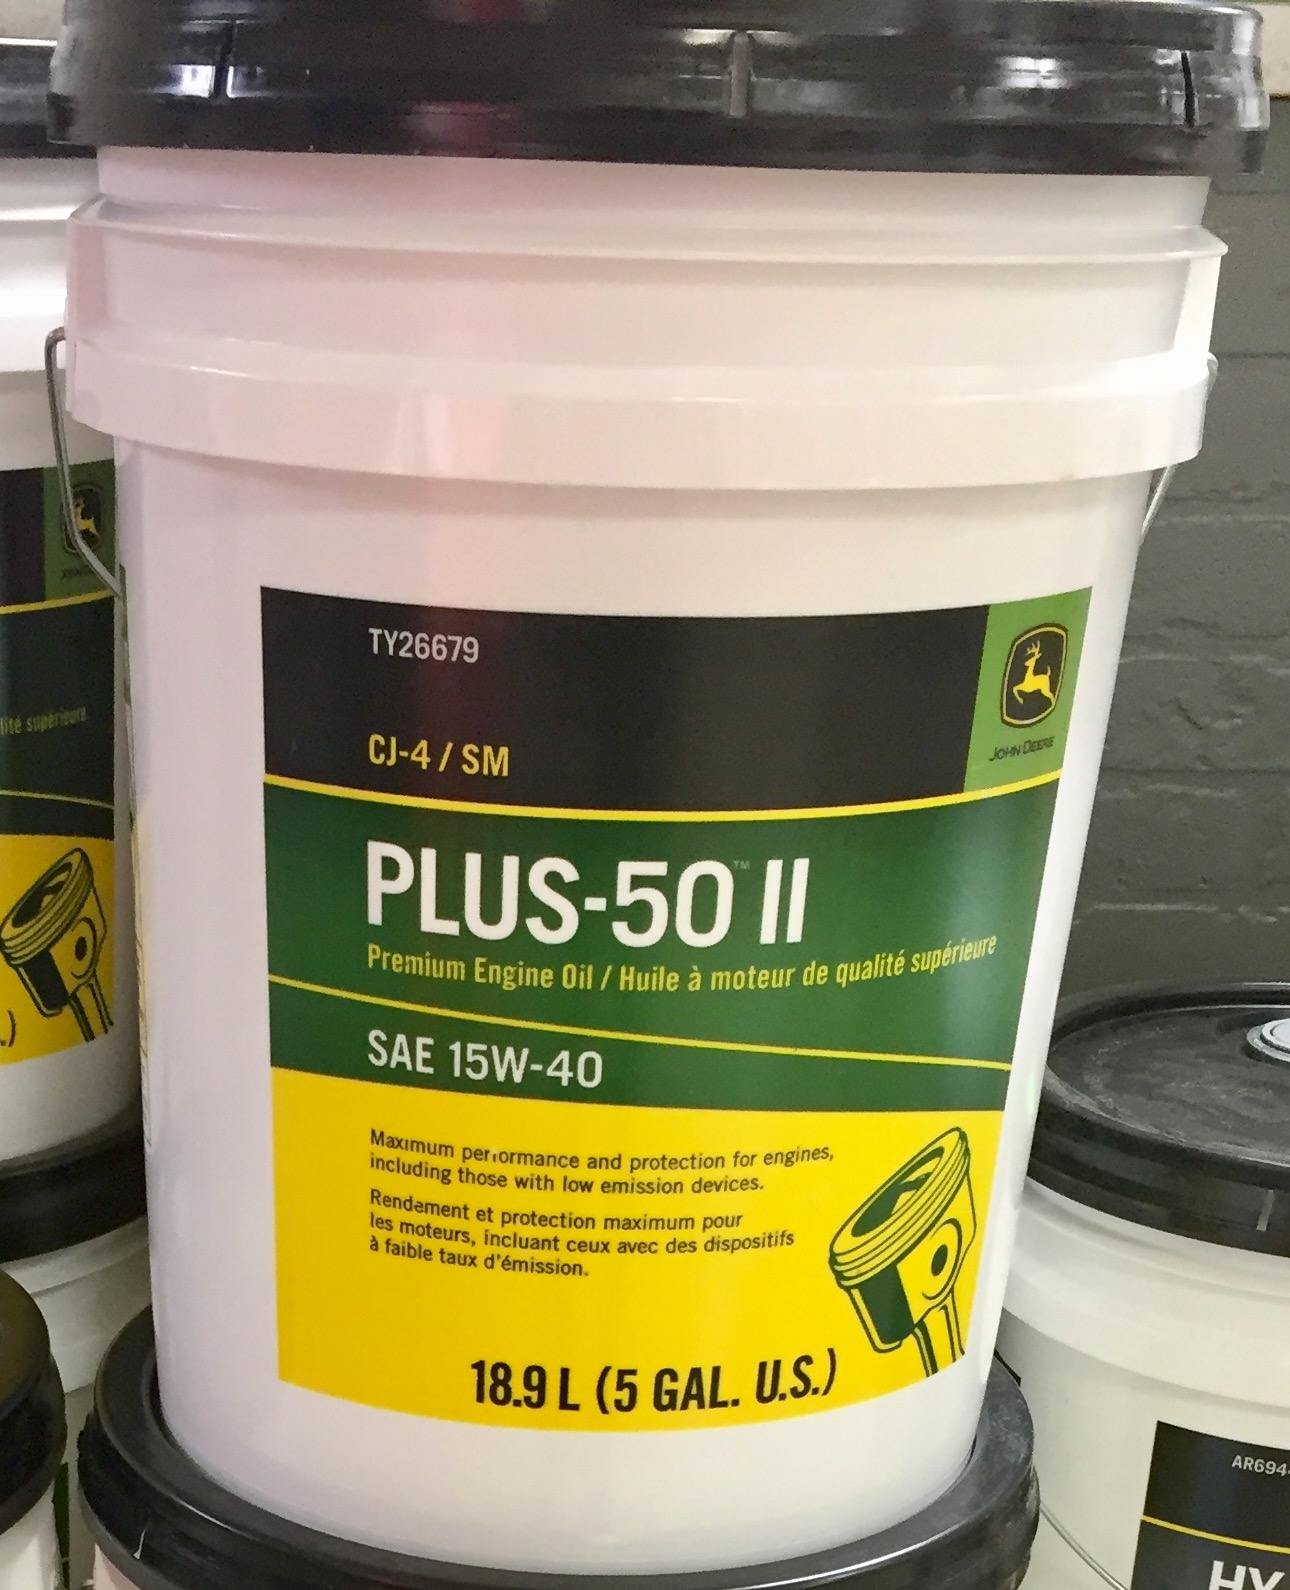 John Deere Plus-50 II CJ-4 Diesel Motor Oil 15W-40 5 Gallon Bucket TY26679